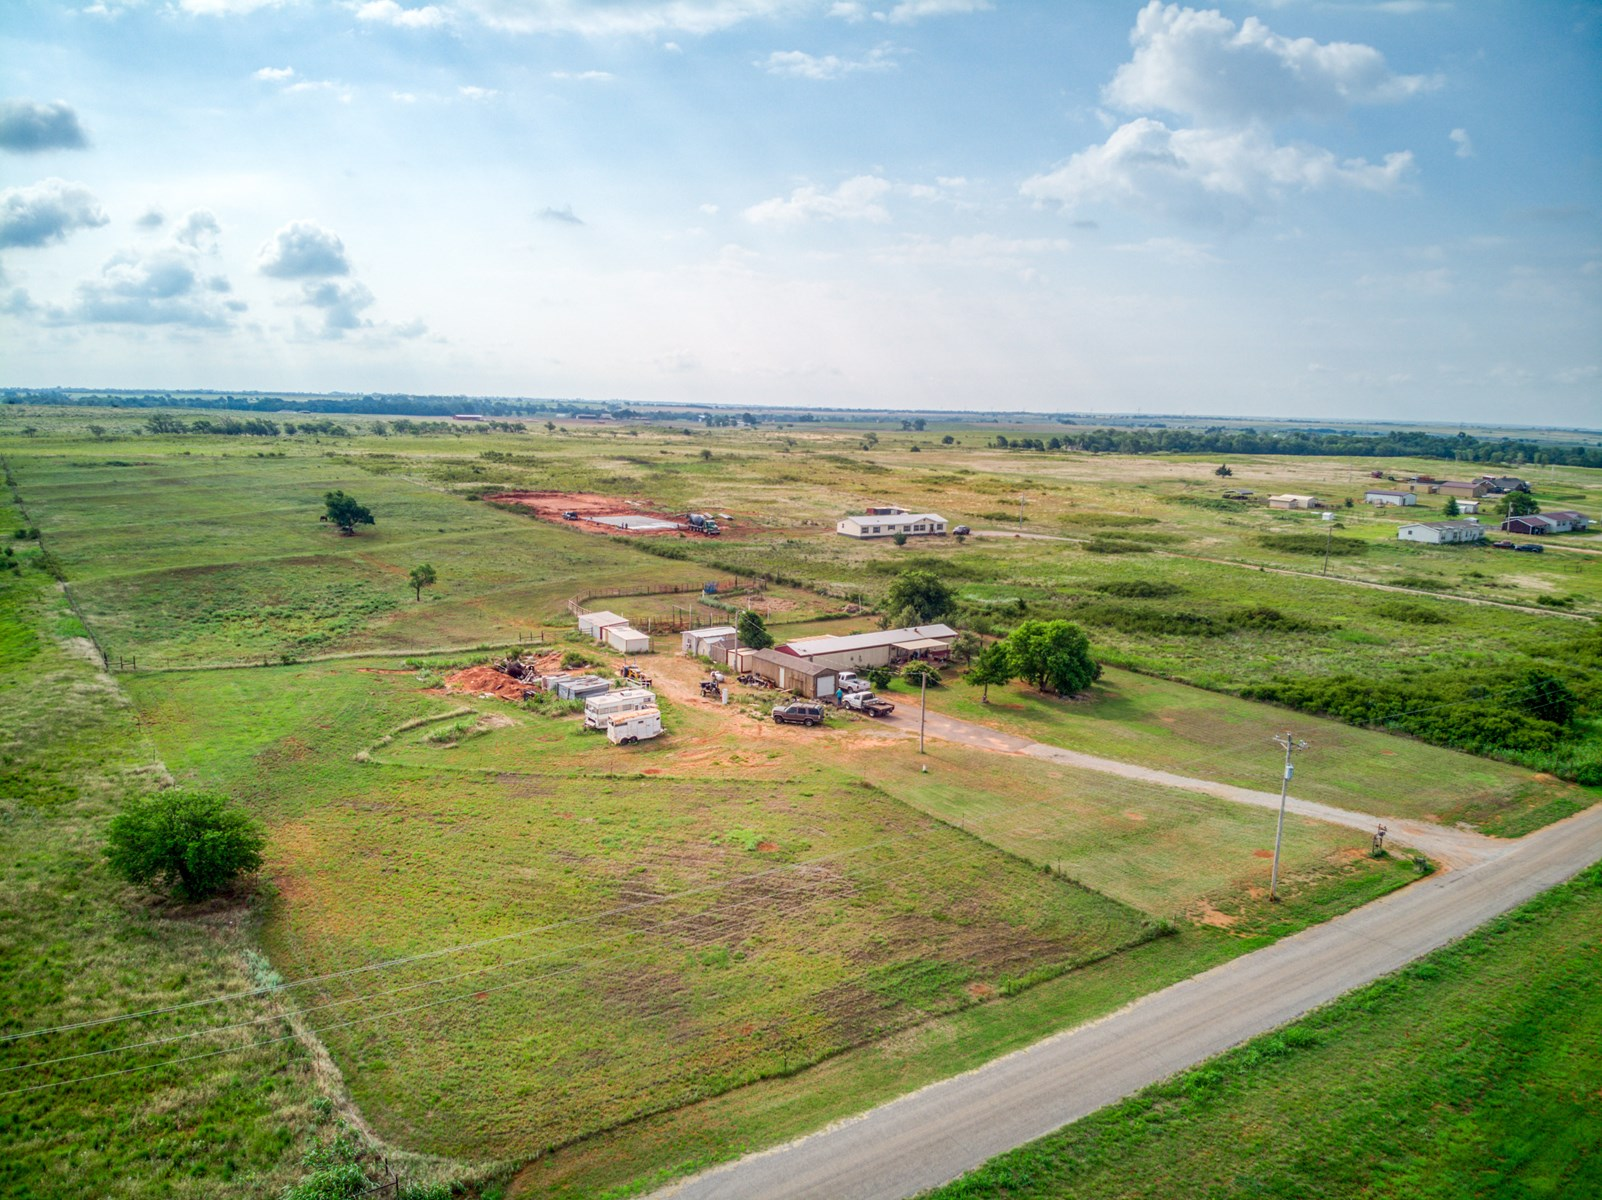 COUNTRY HOME FOR SALE IN SAYRE OKLAHOMA